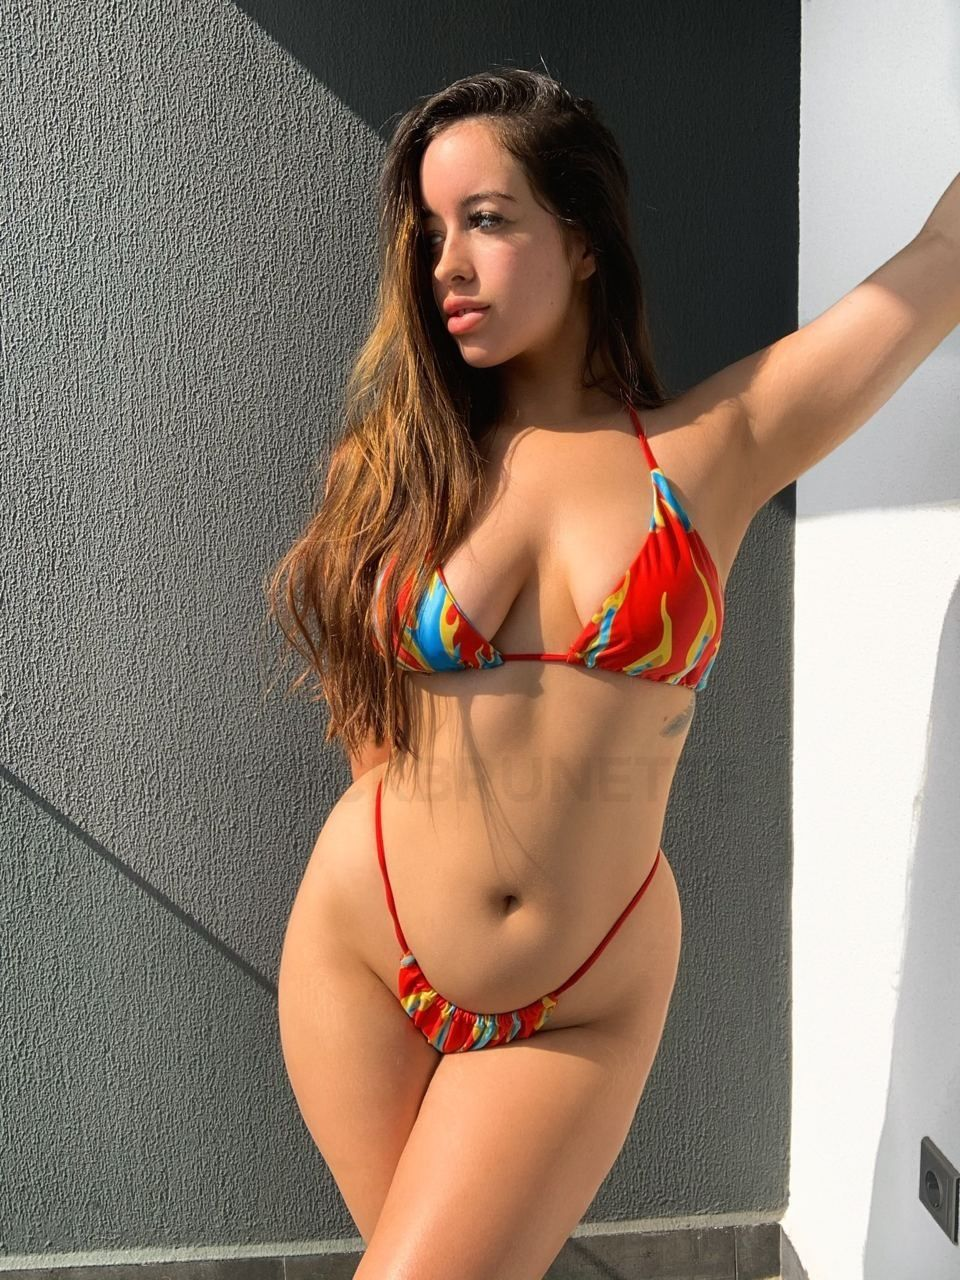 Onlyfans free Thickbrunette onlyfans leaked